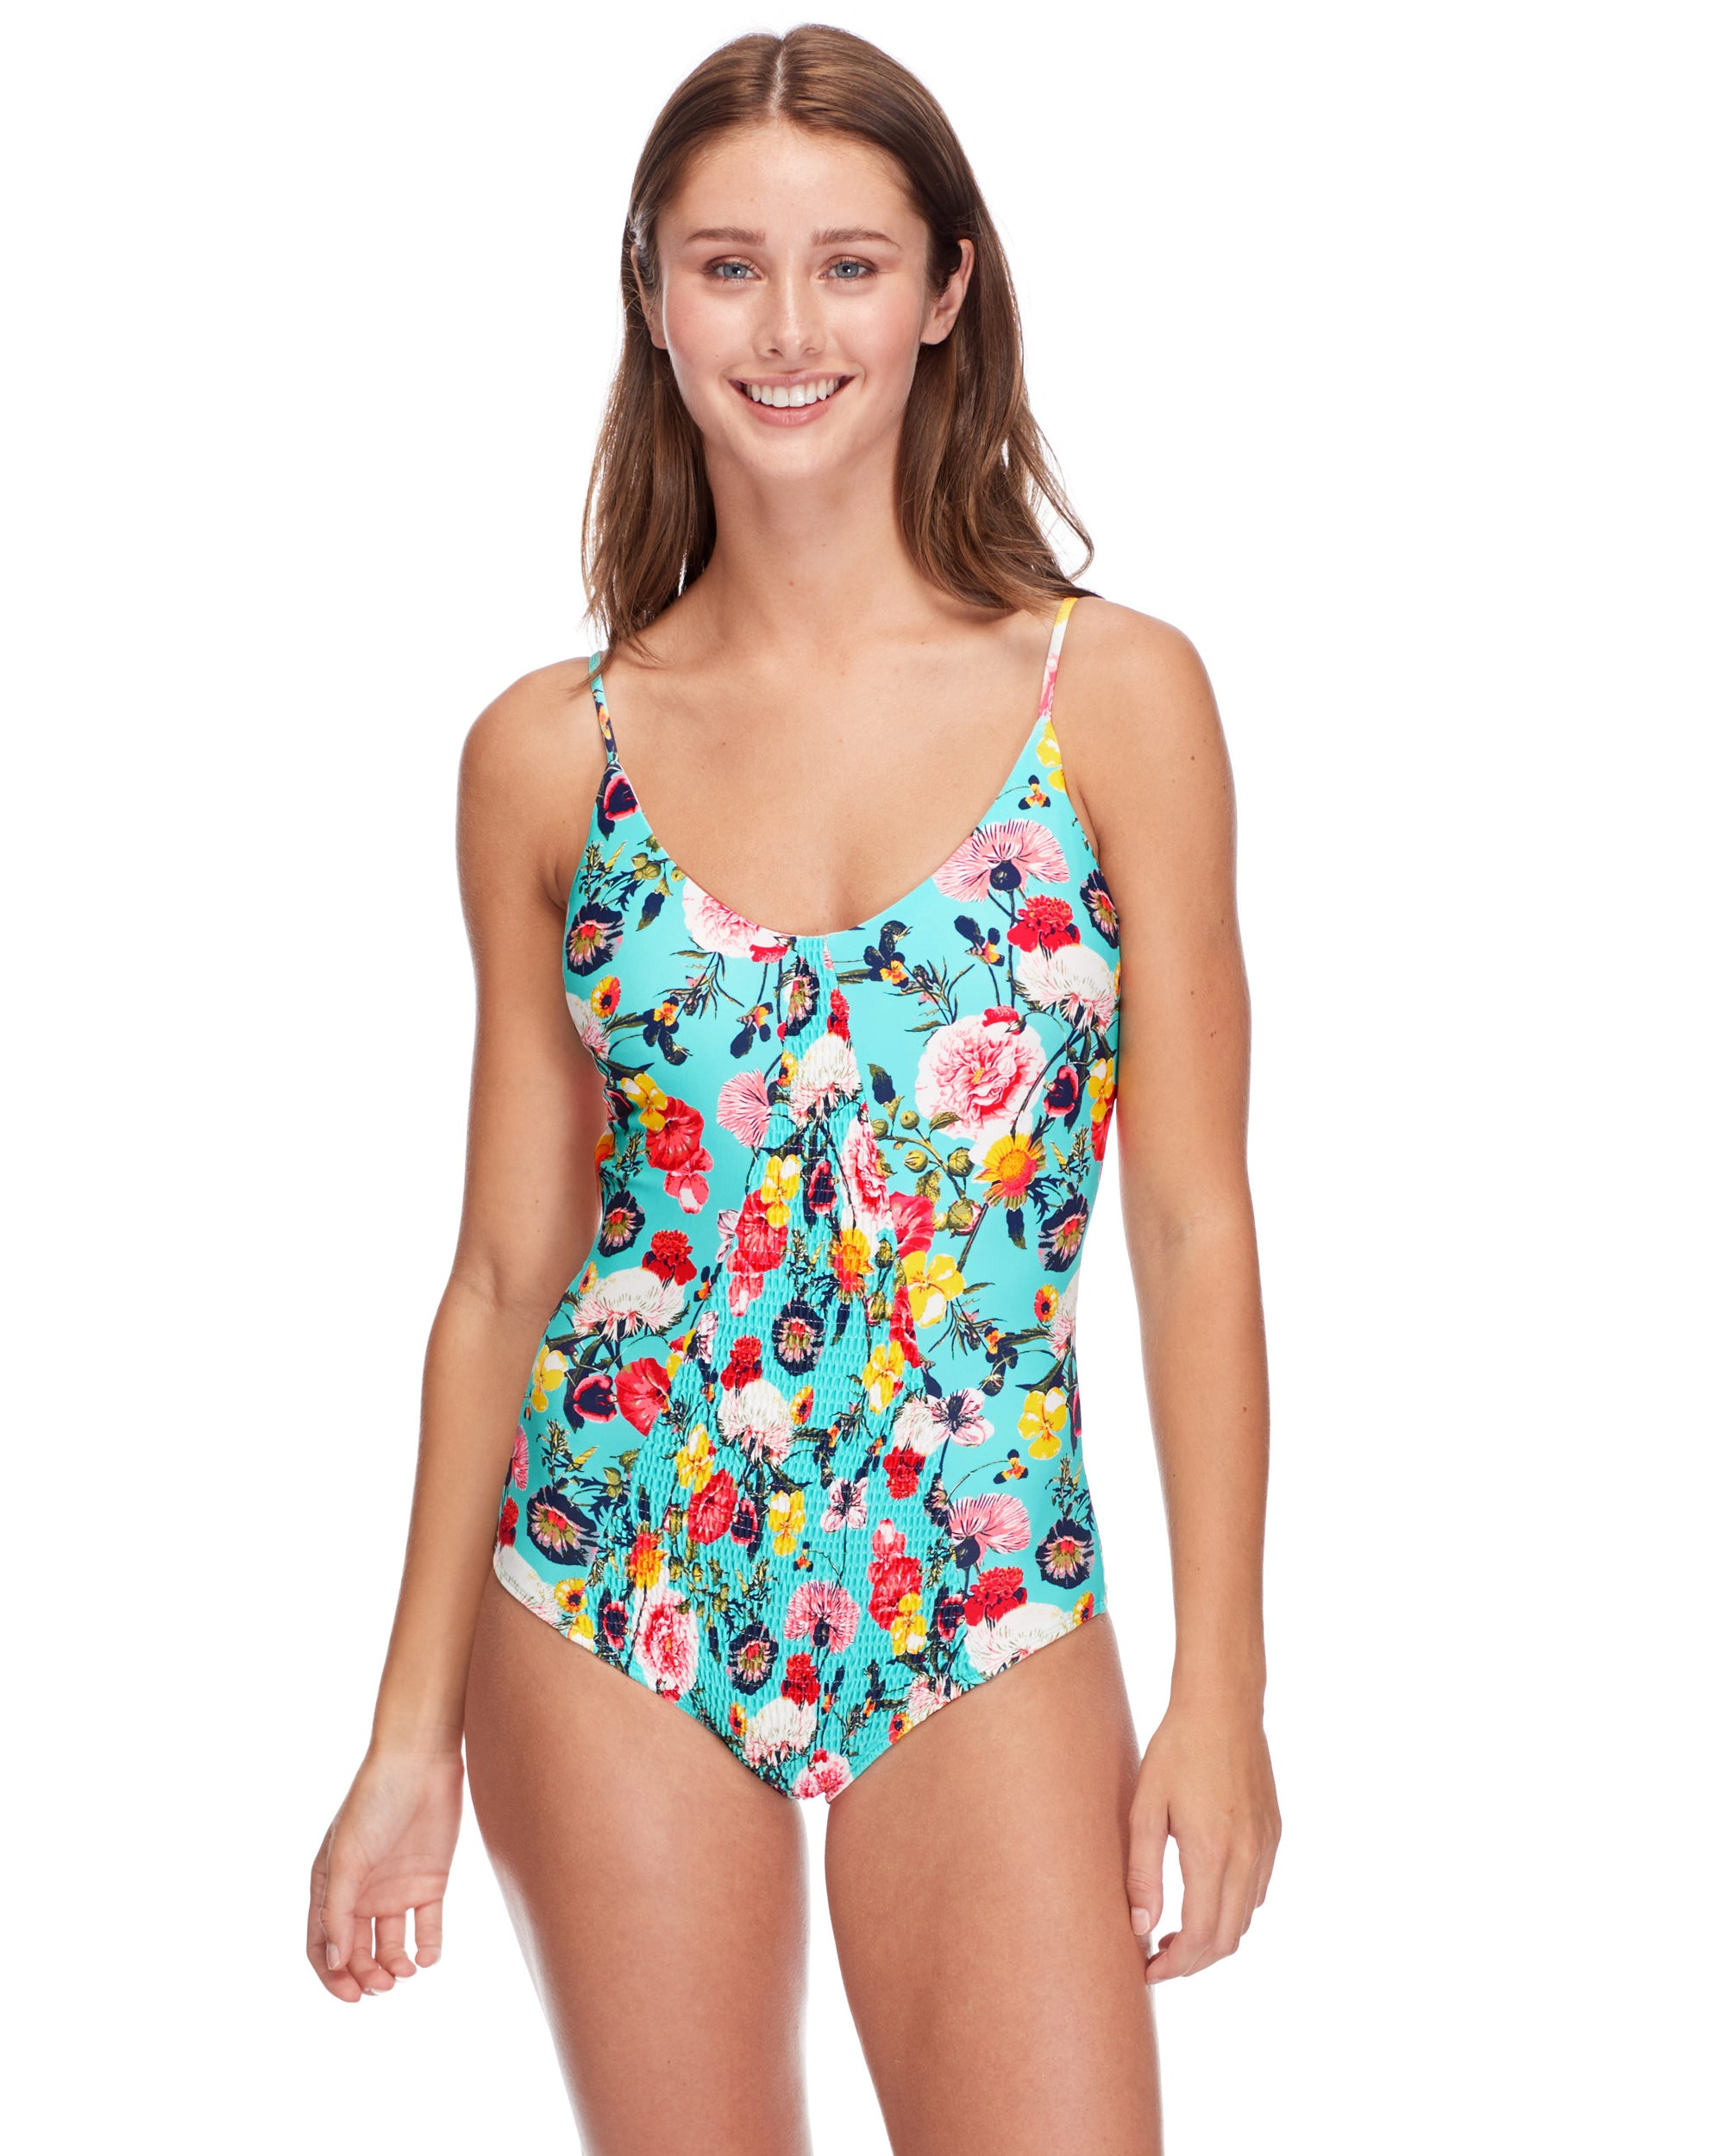 Bitola Noa One-Piece Swim Suit - Sea Mist